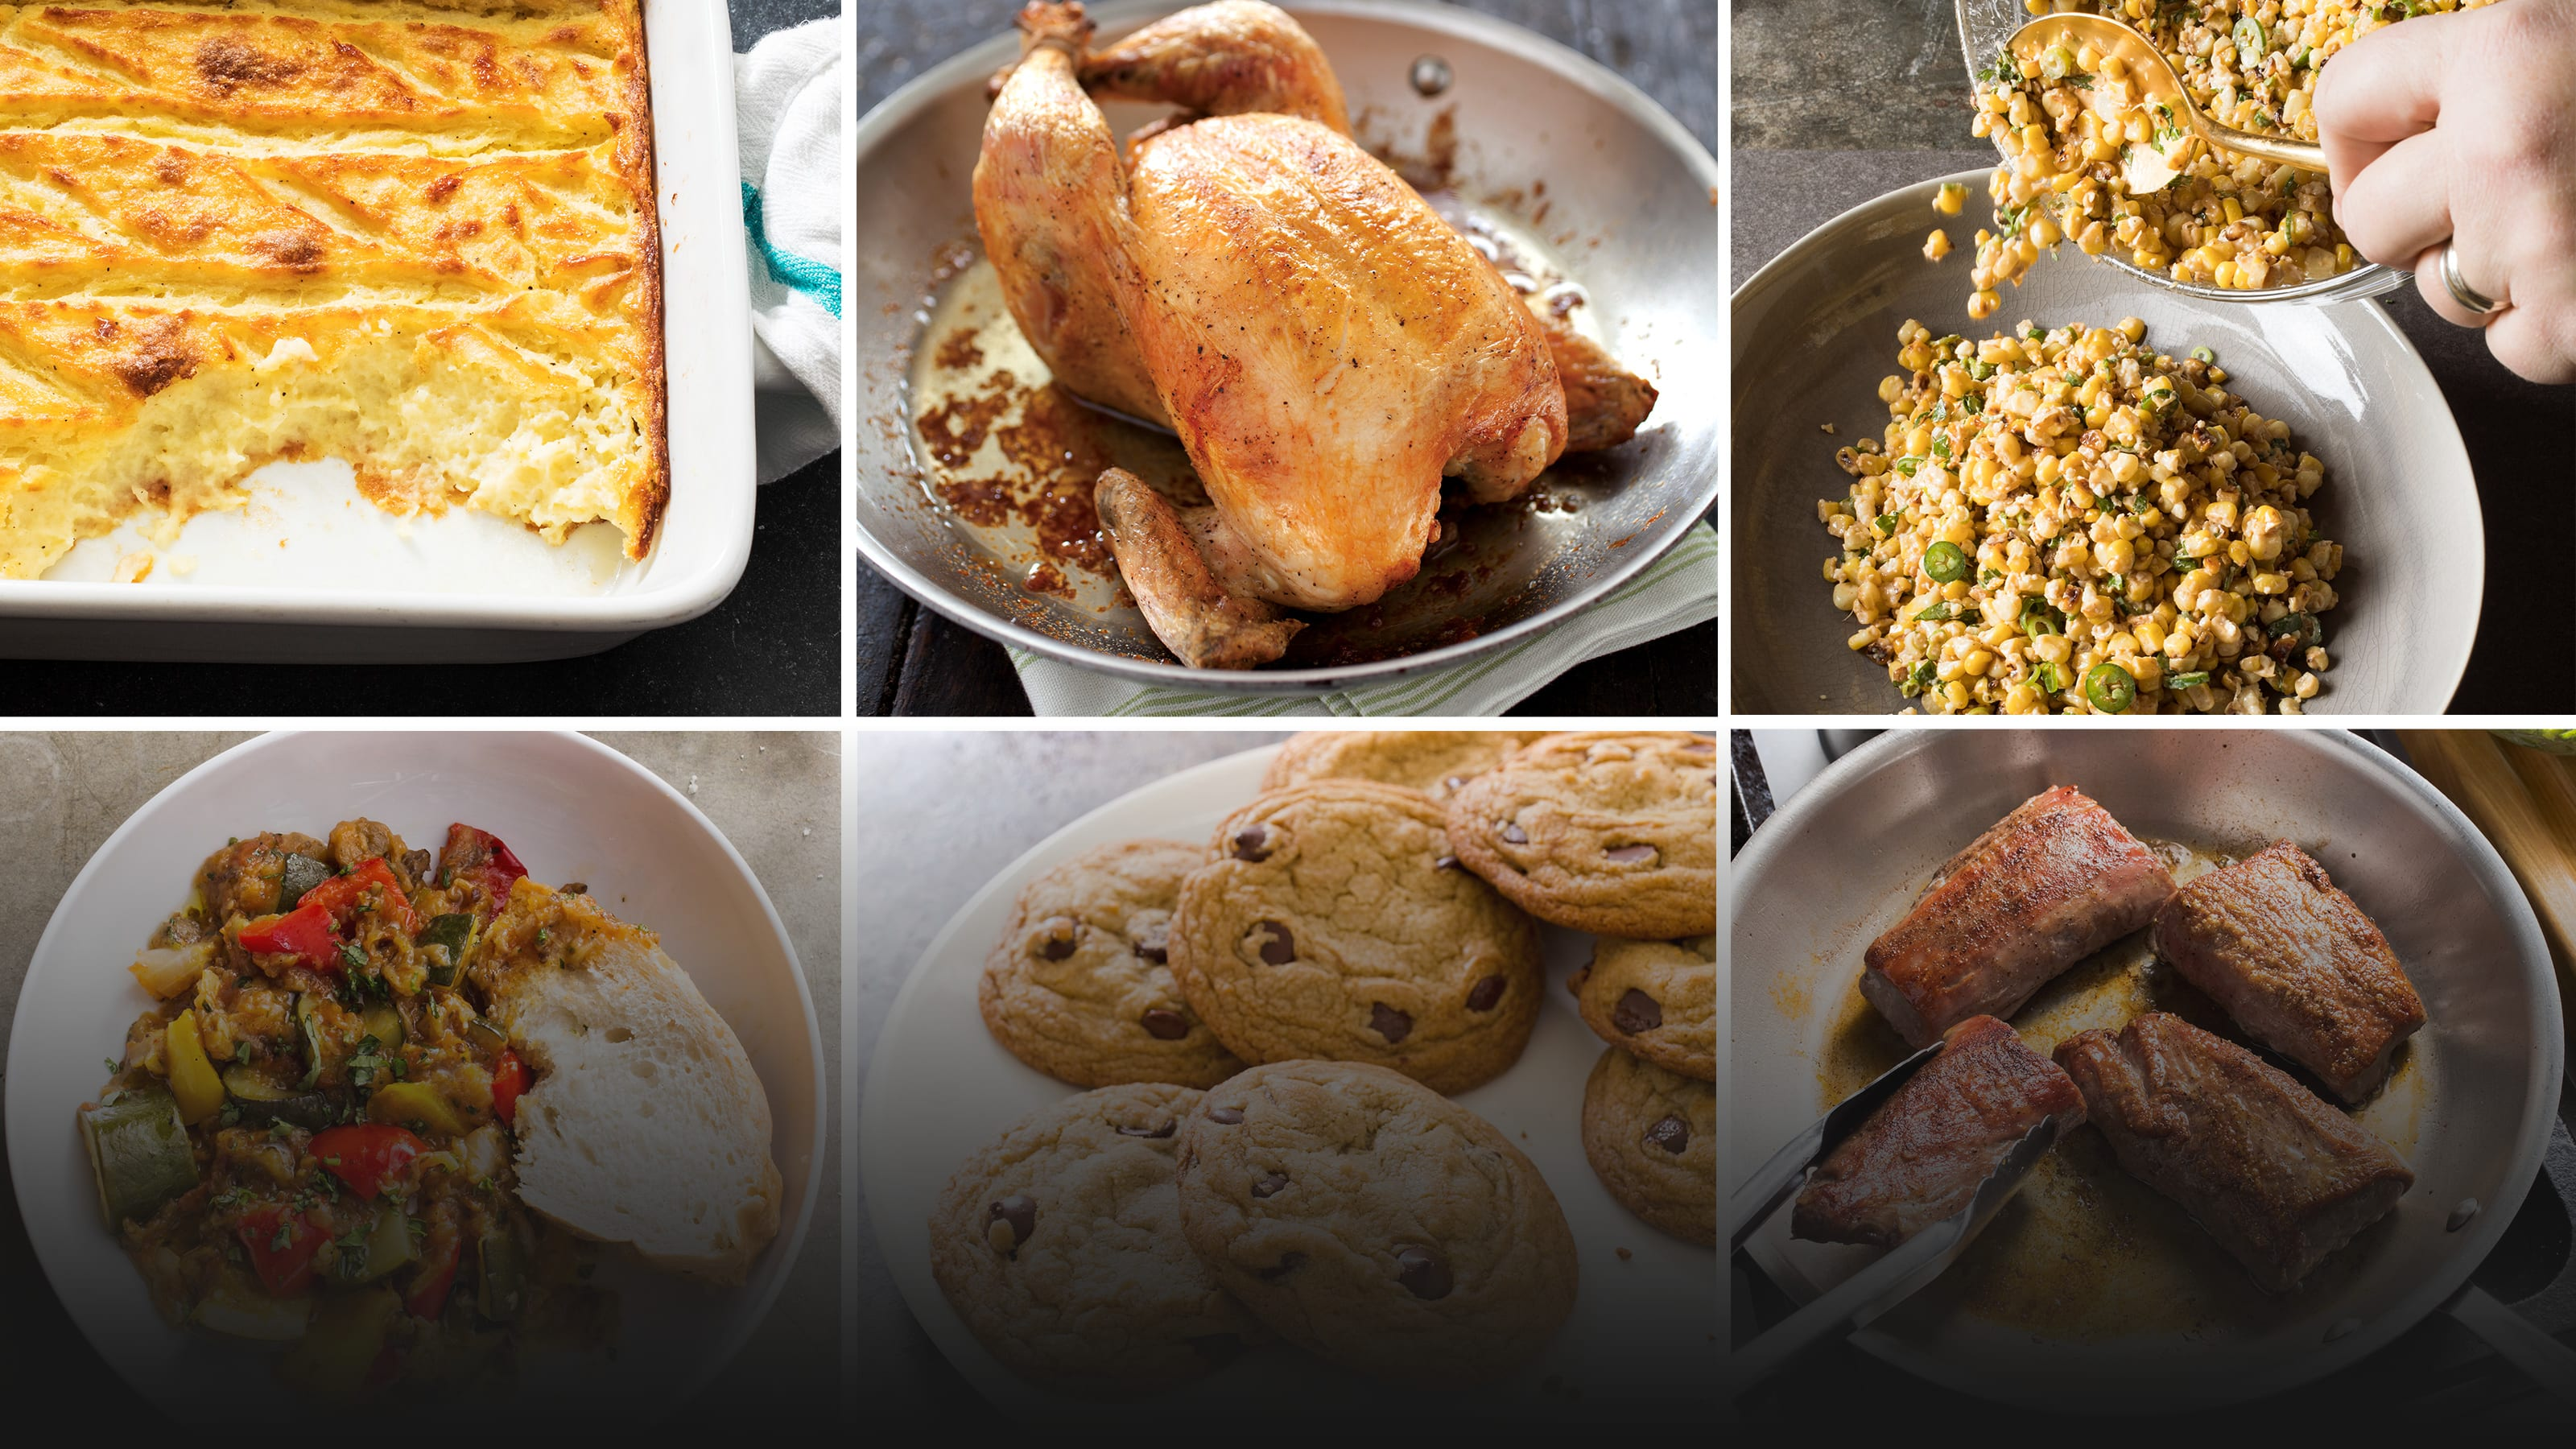 The Most Popular America's Test Kitchen in August